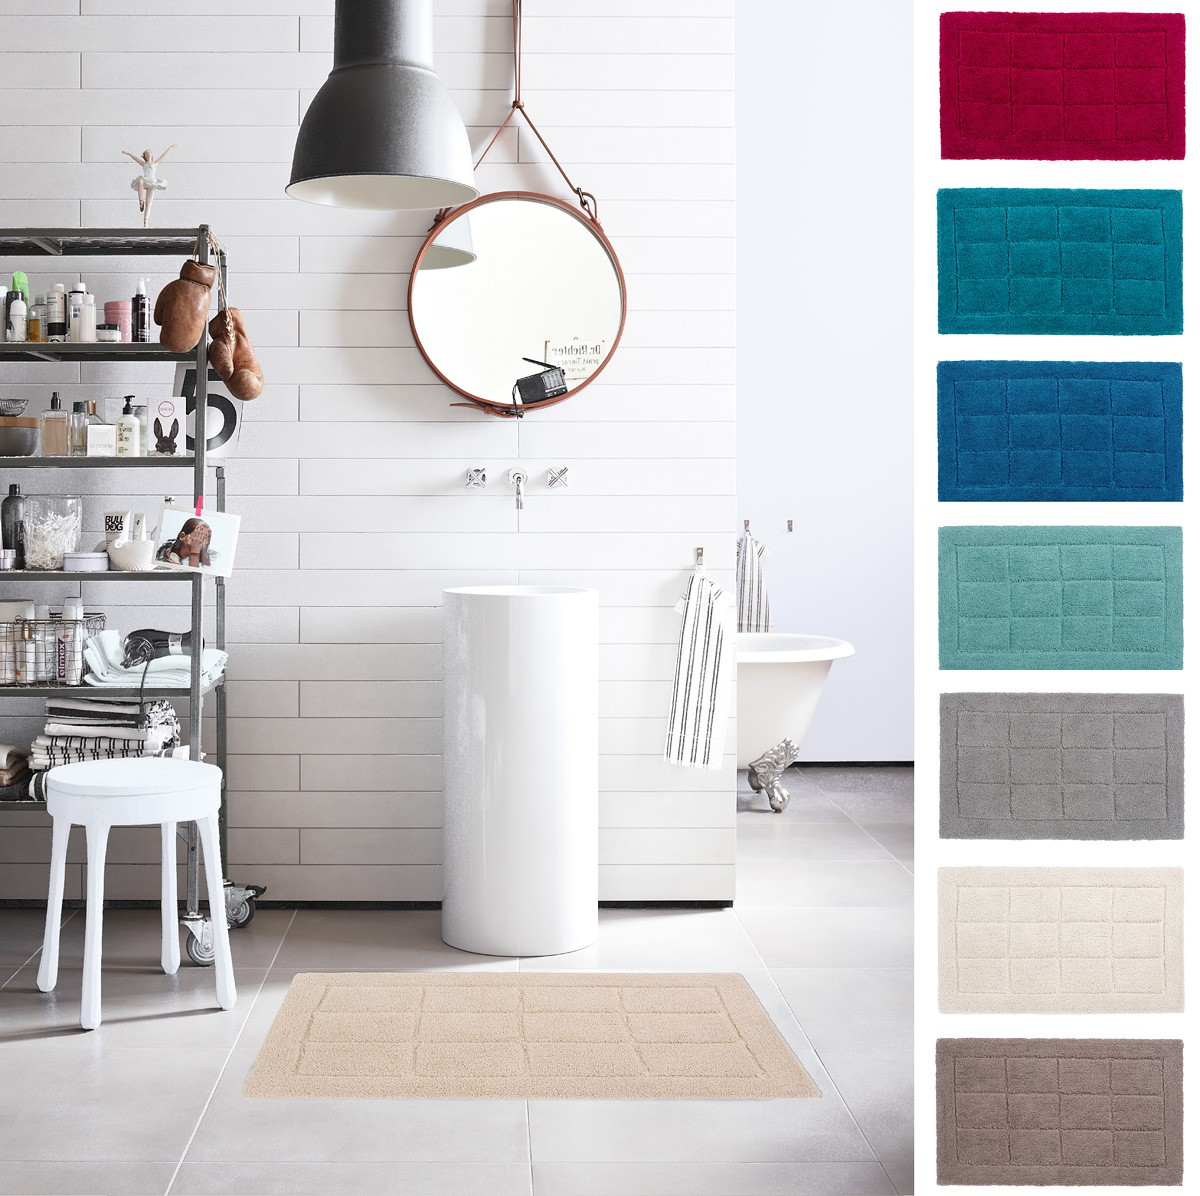 Bathmat Schoner Wohnen Tiles Diff Colors And Sizes